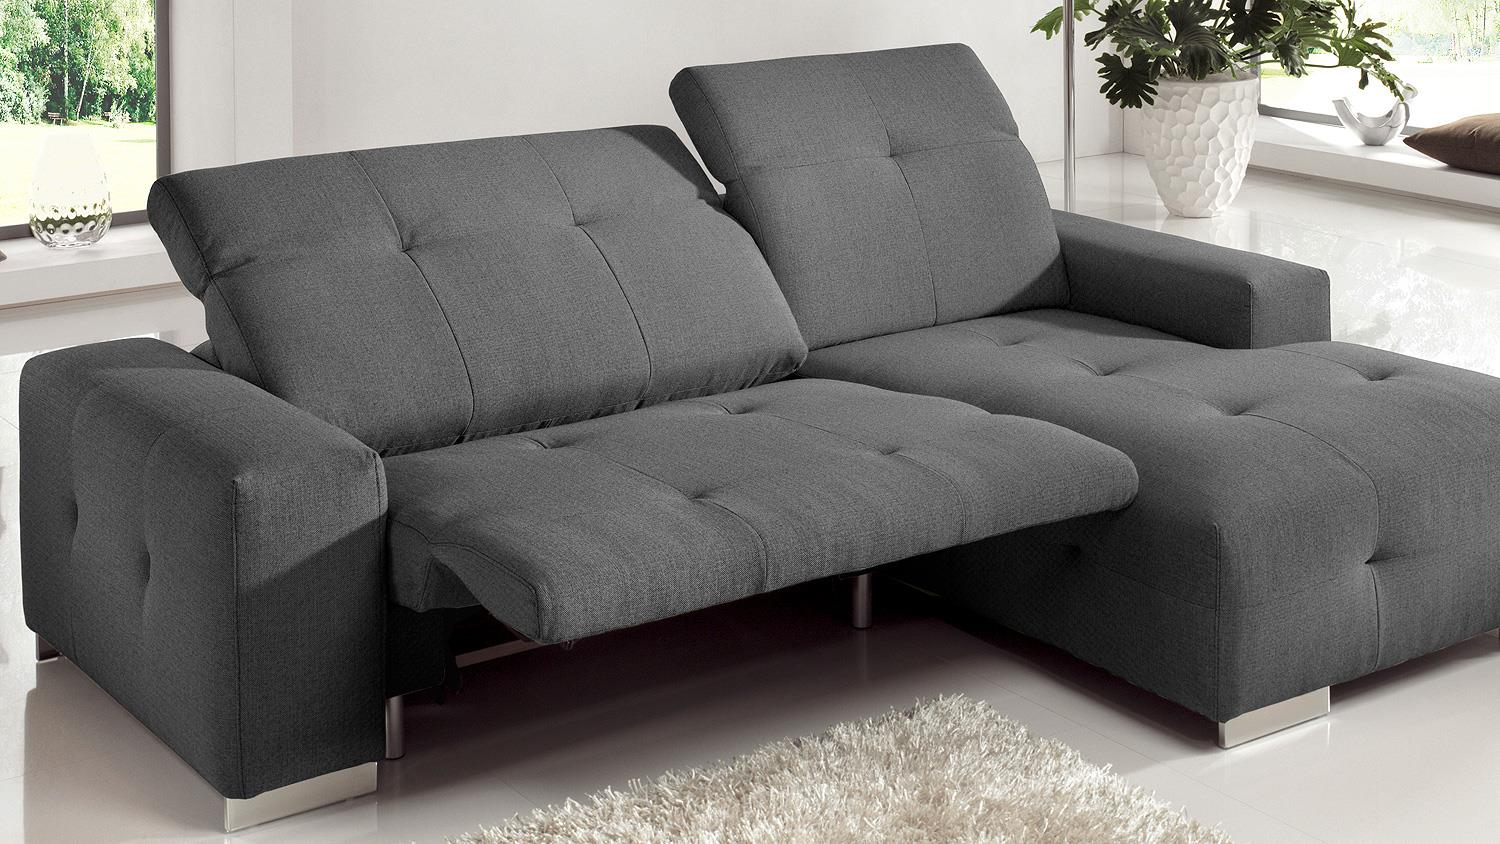 sofa mit relaxfunktion elektrisch das beste aus. Black Bedroom Furniture Sets. Home Design Ideas